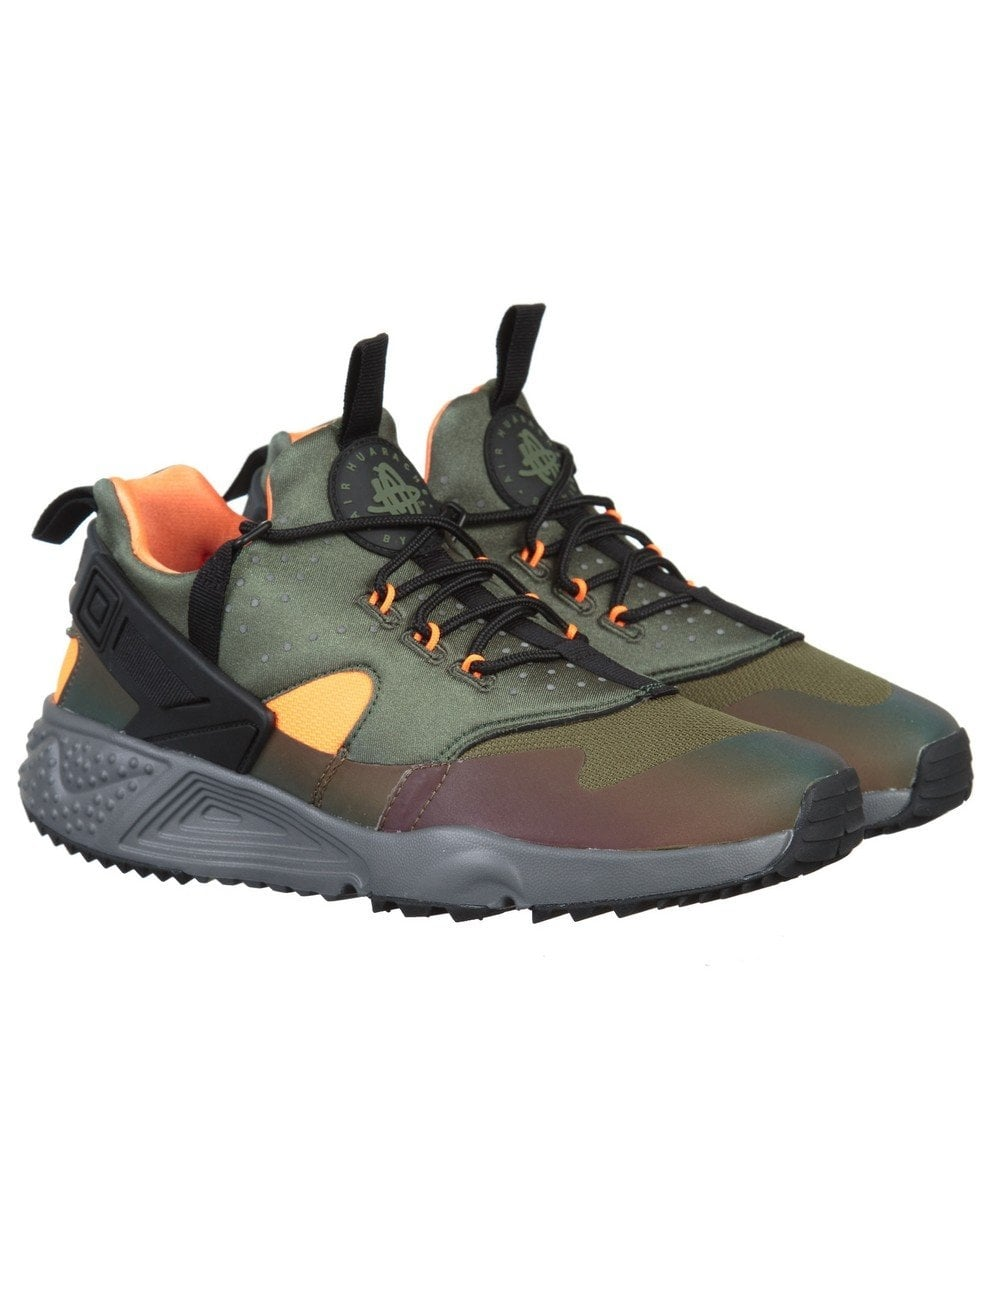 best service b87ae 29e09 Nike Air Huarache Utility Premium Shoes - Carbon GreenBlack